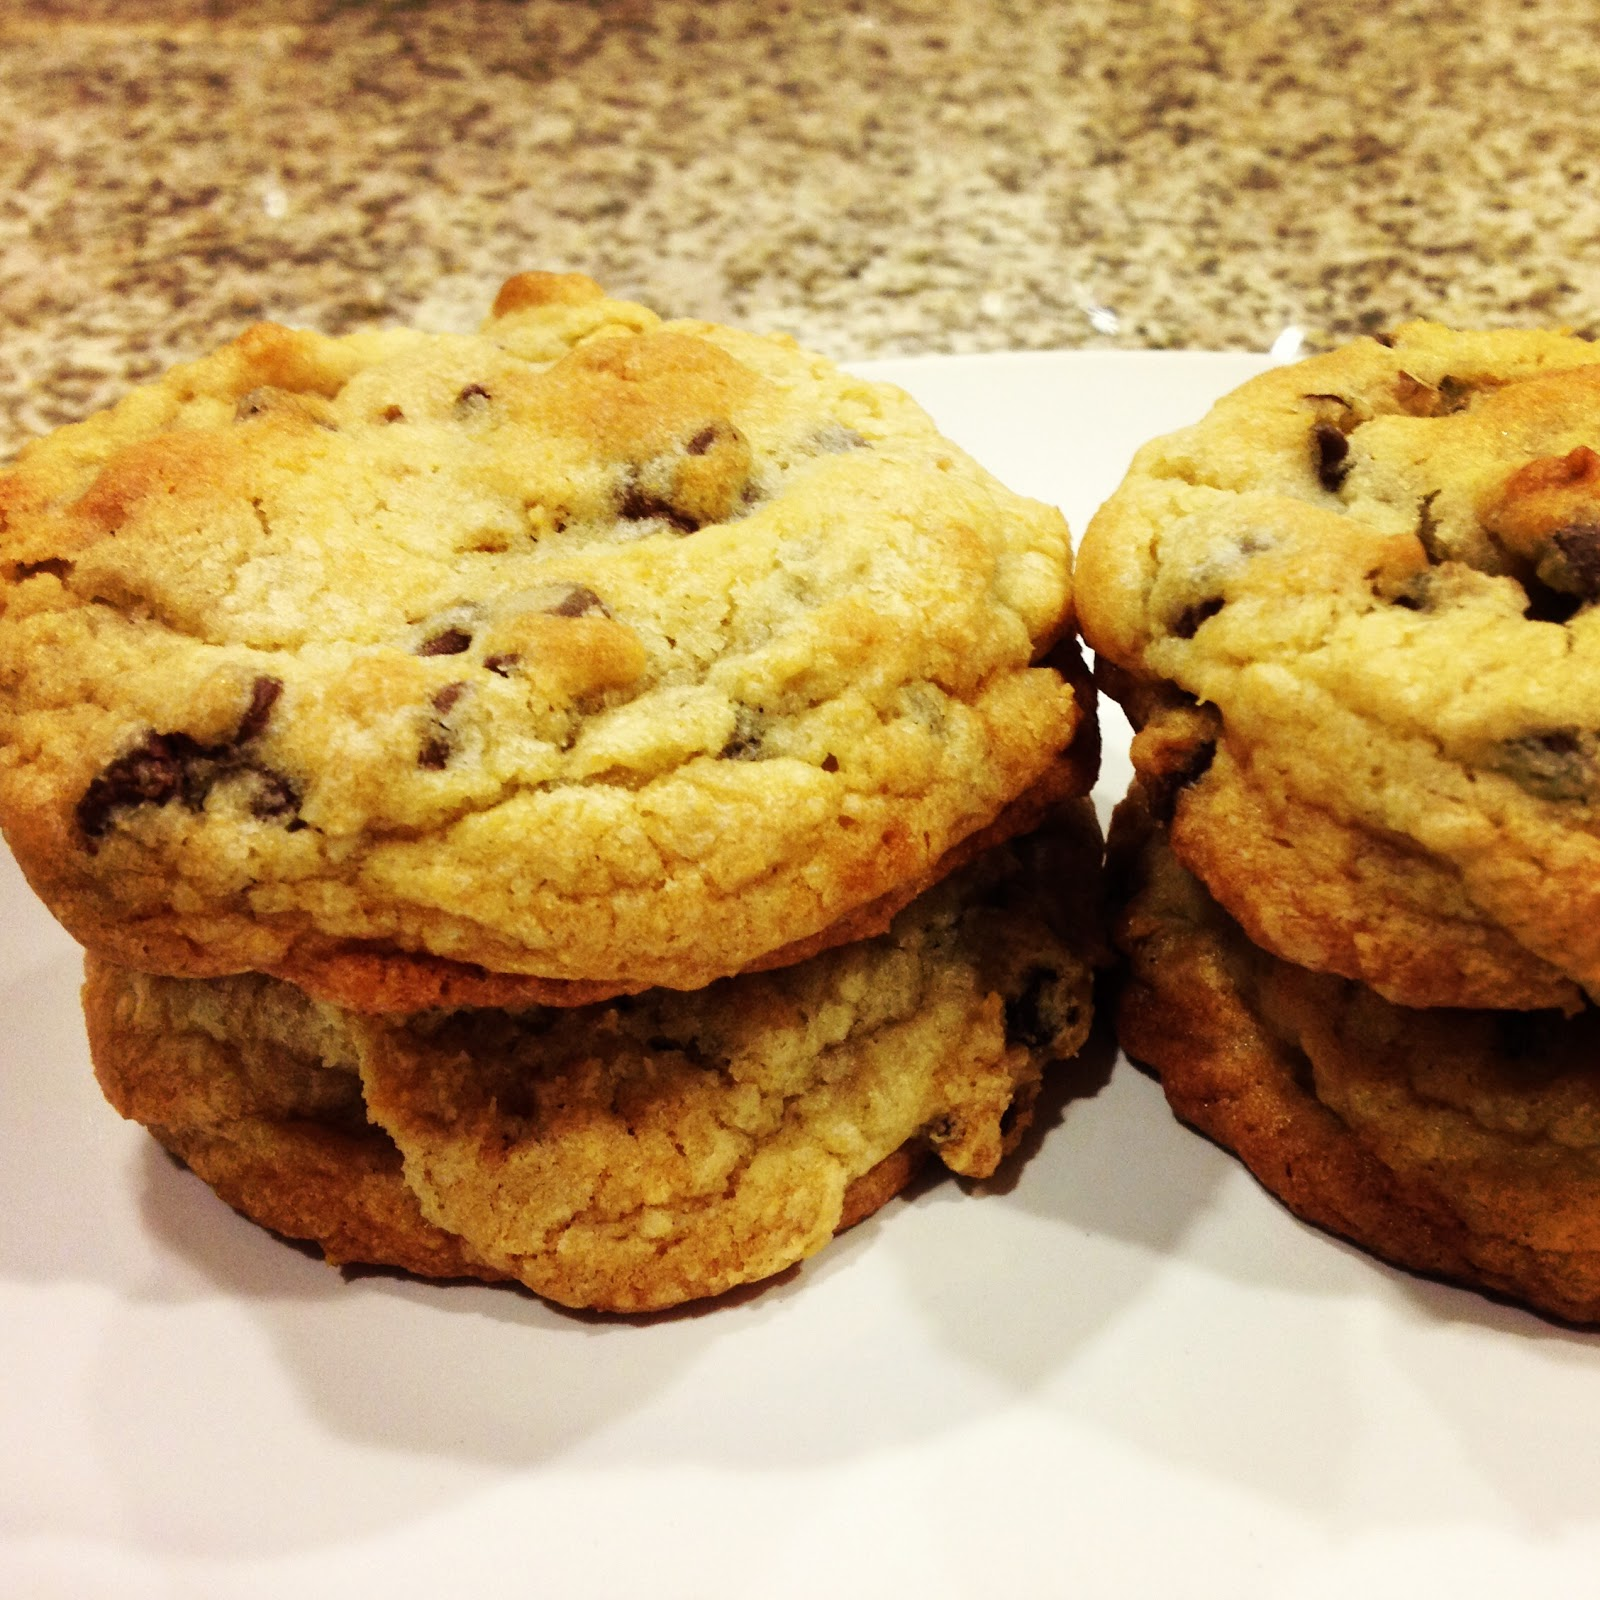 Cook Yu Cook Mi: Jacques Torres' Secret Chocolate Chip Cookie